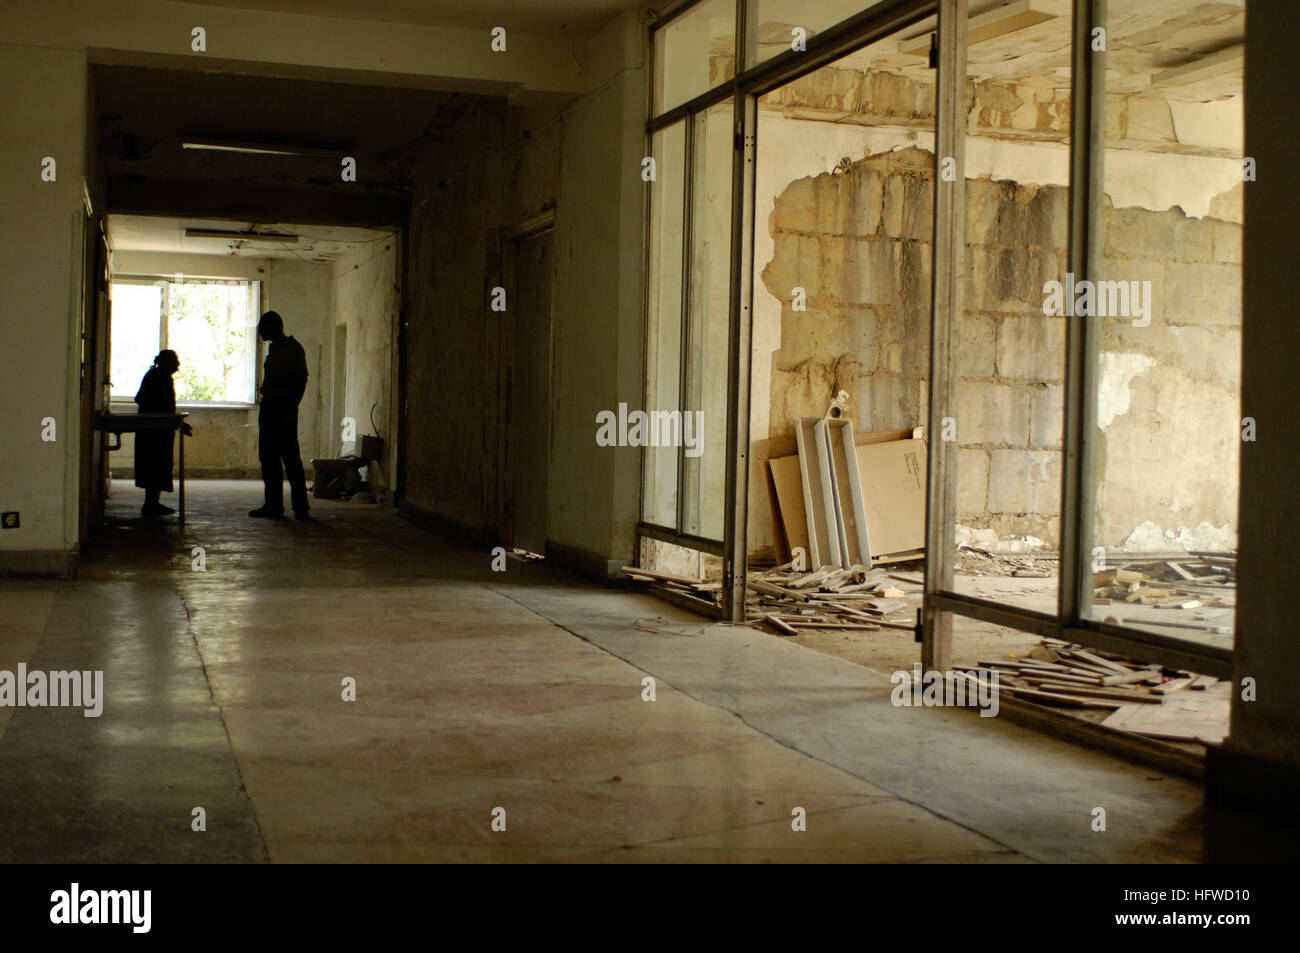 080828-F-0560B-007 TBILISI, Georgia (Aug. 28, 2008) A Georgian woman speaks with a man in a former military hospital - Stock Image